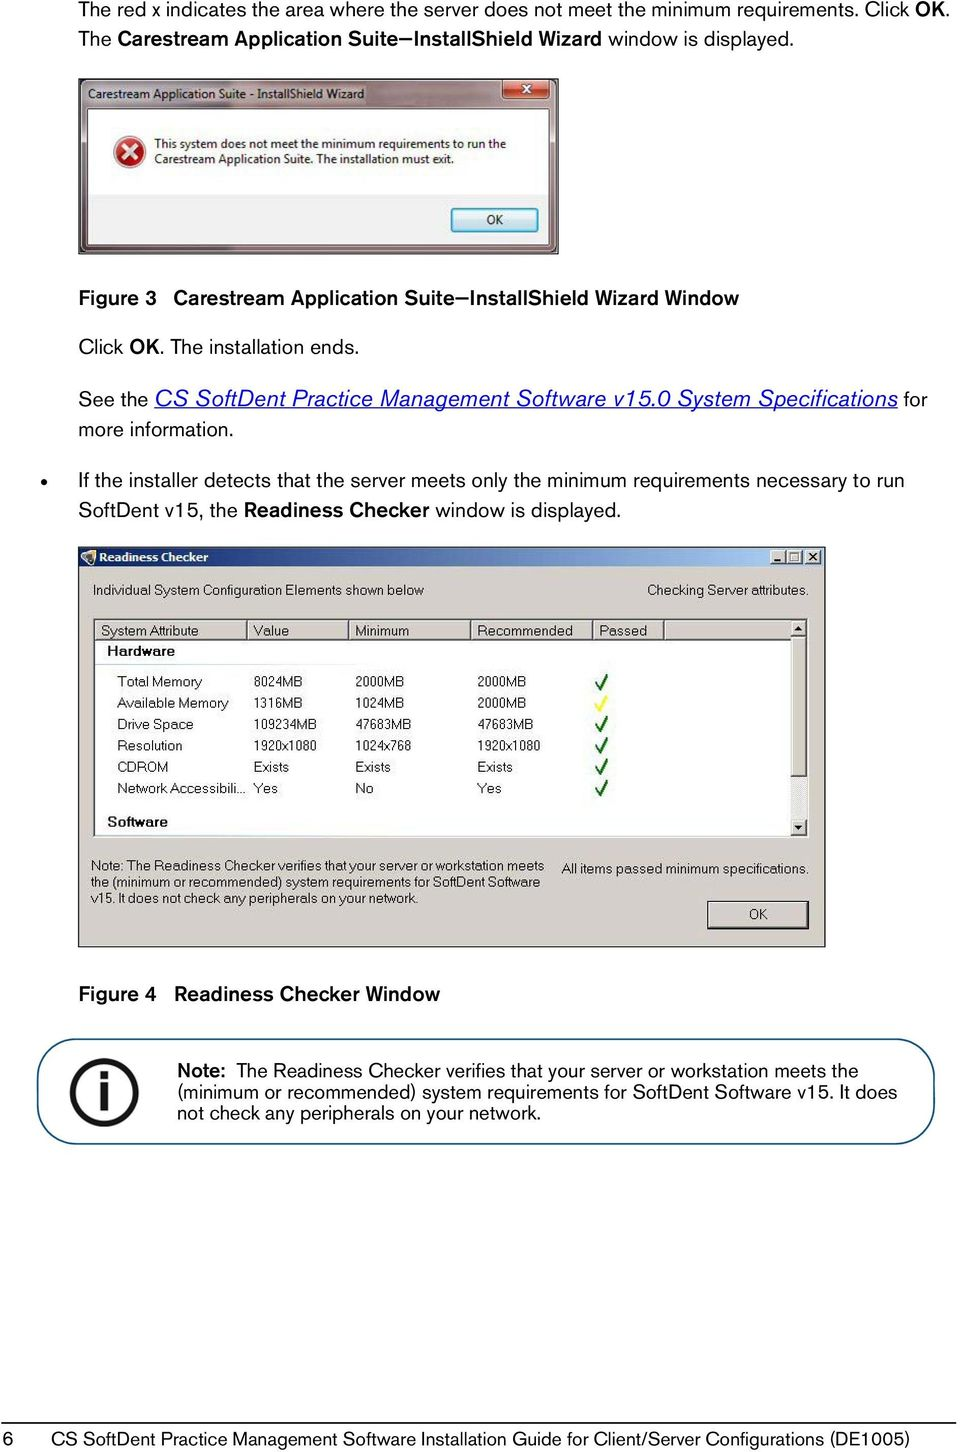 If the installer detects that the server meets only the minimum requirements necessary to run SoftDent v15, the Readiness Checker window is displayed.